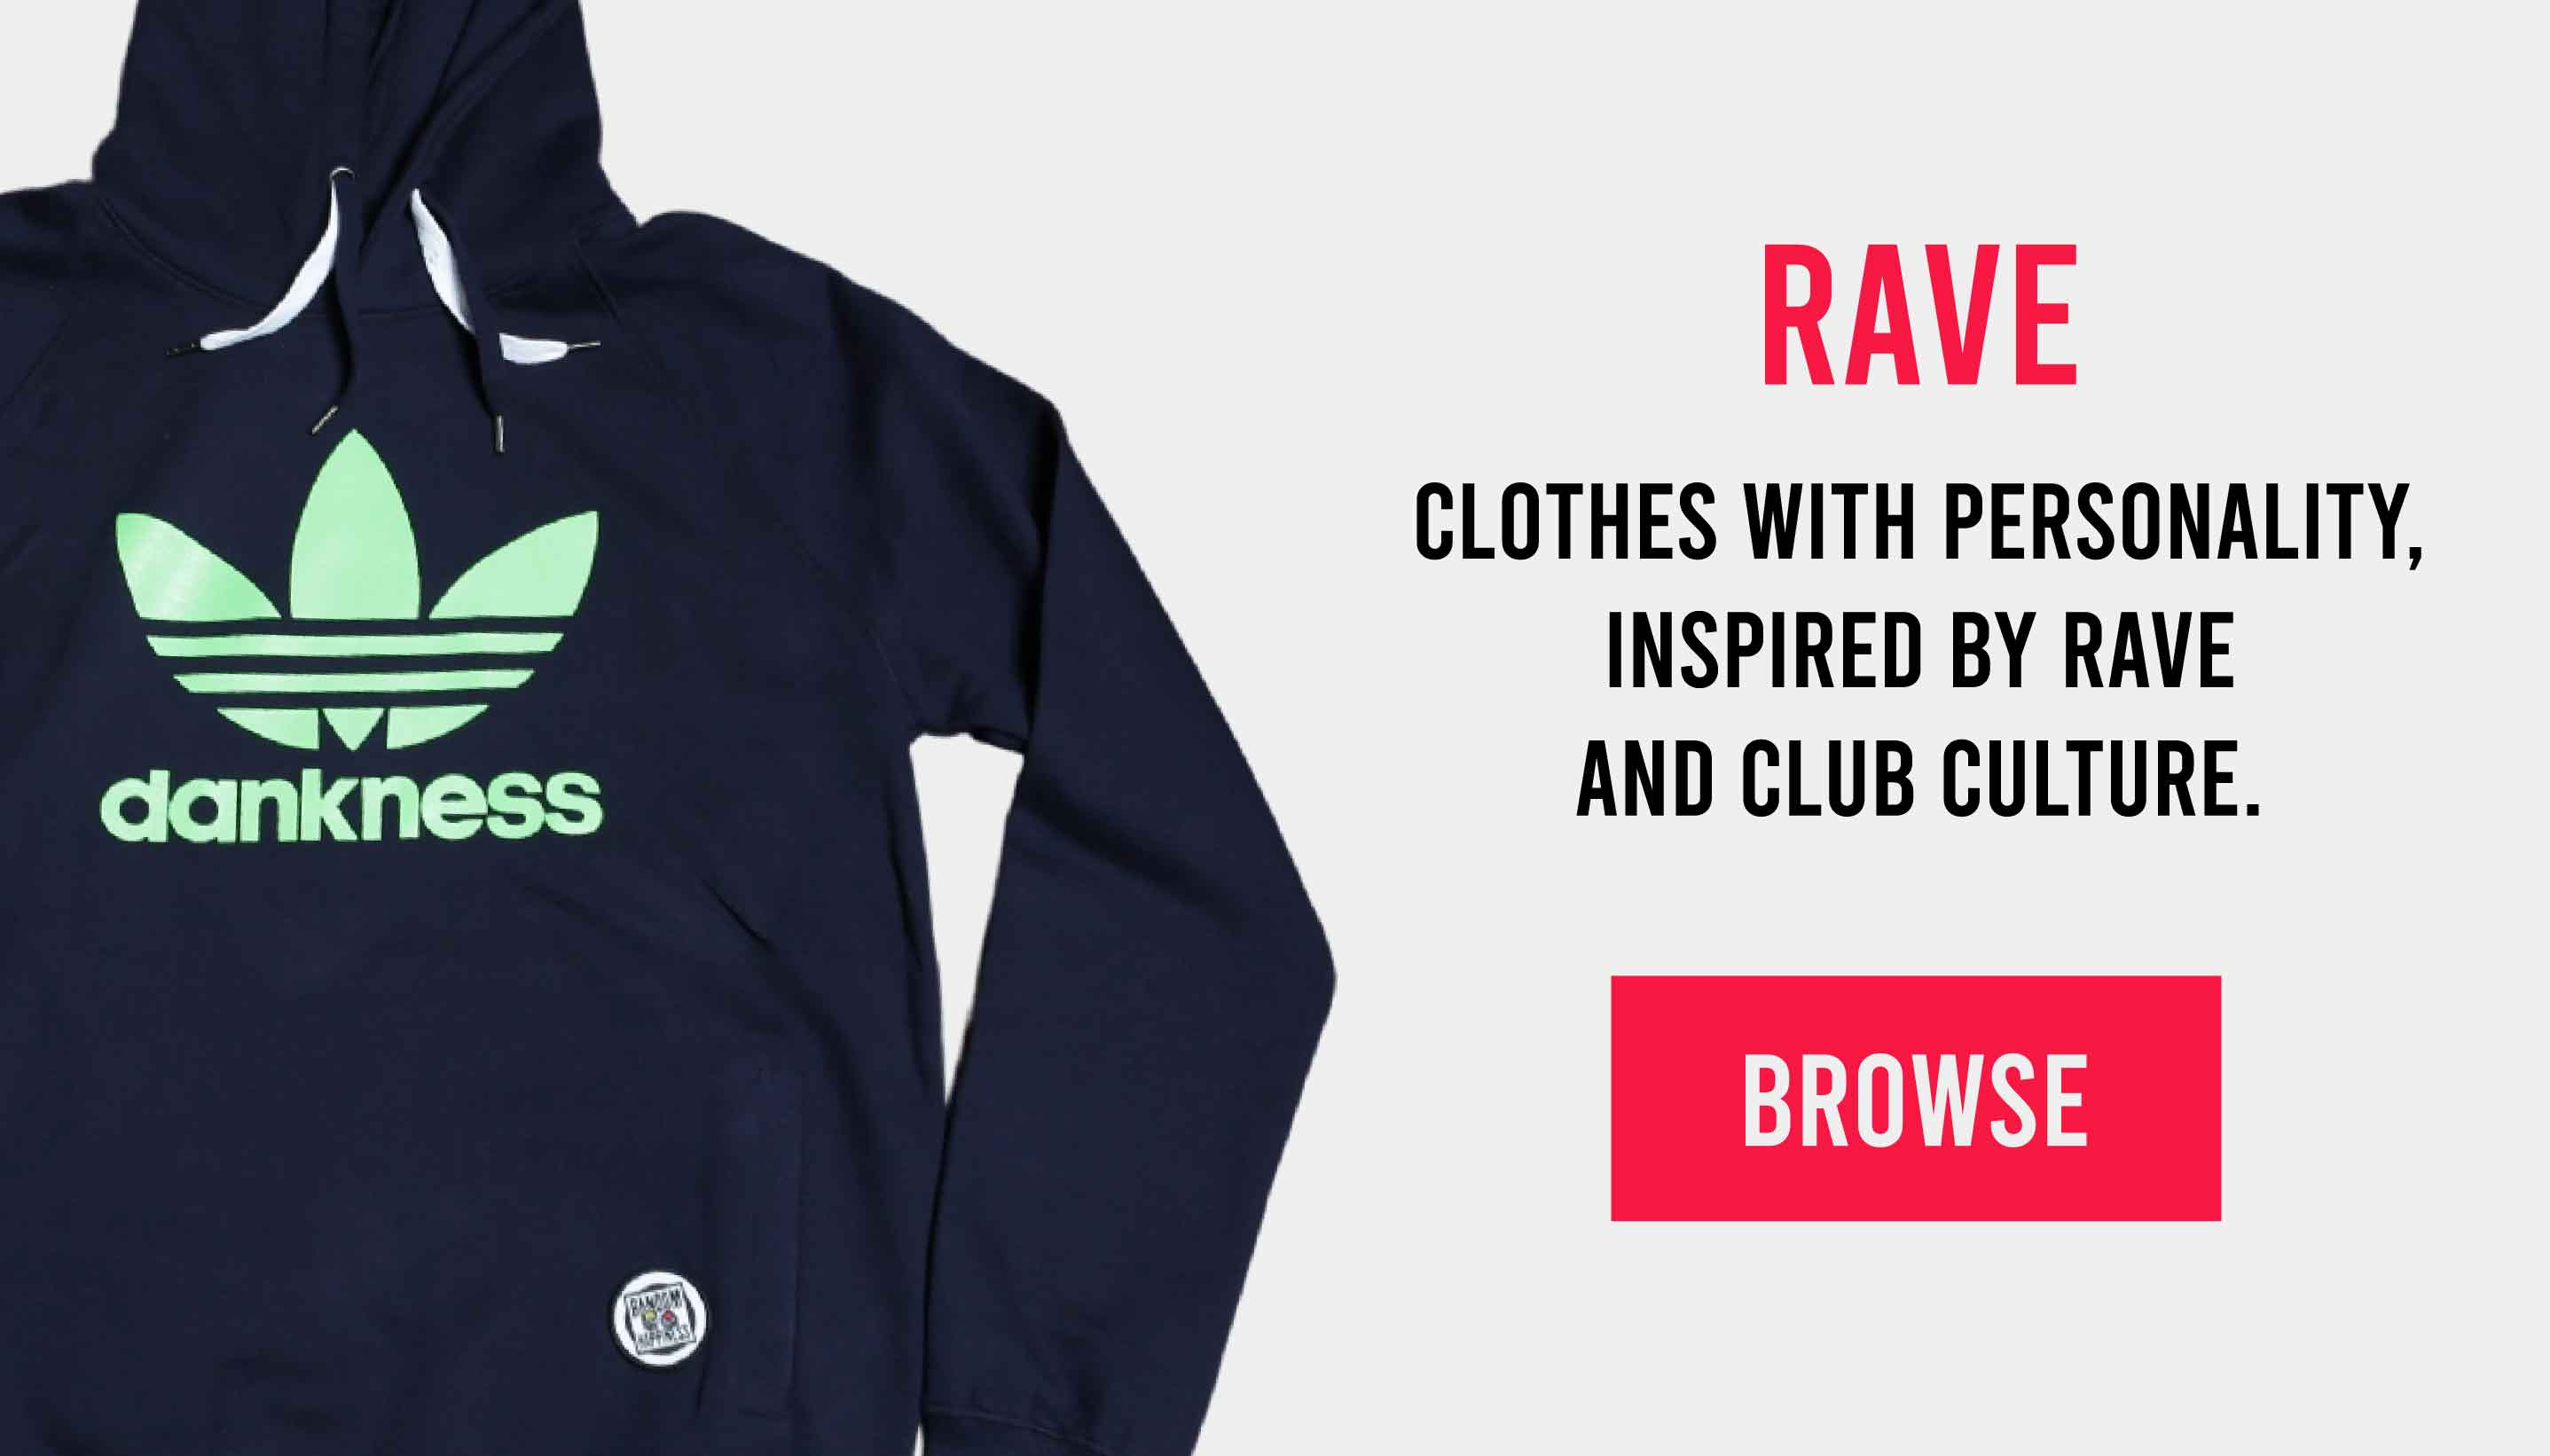 Rave clothing - shop now